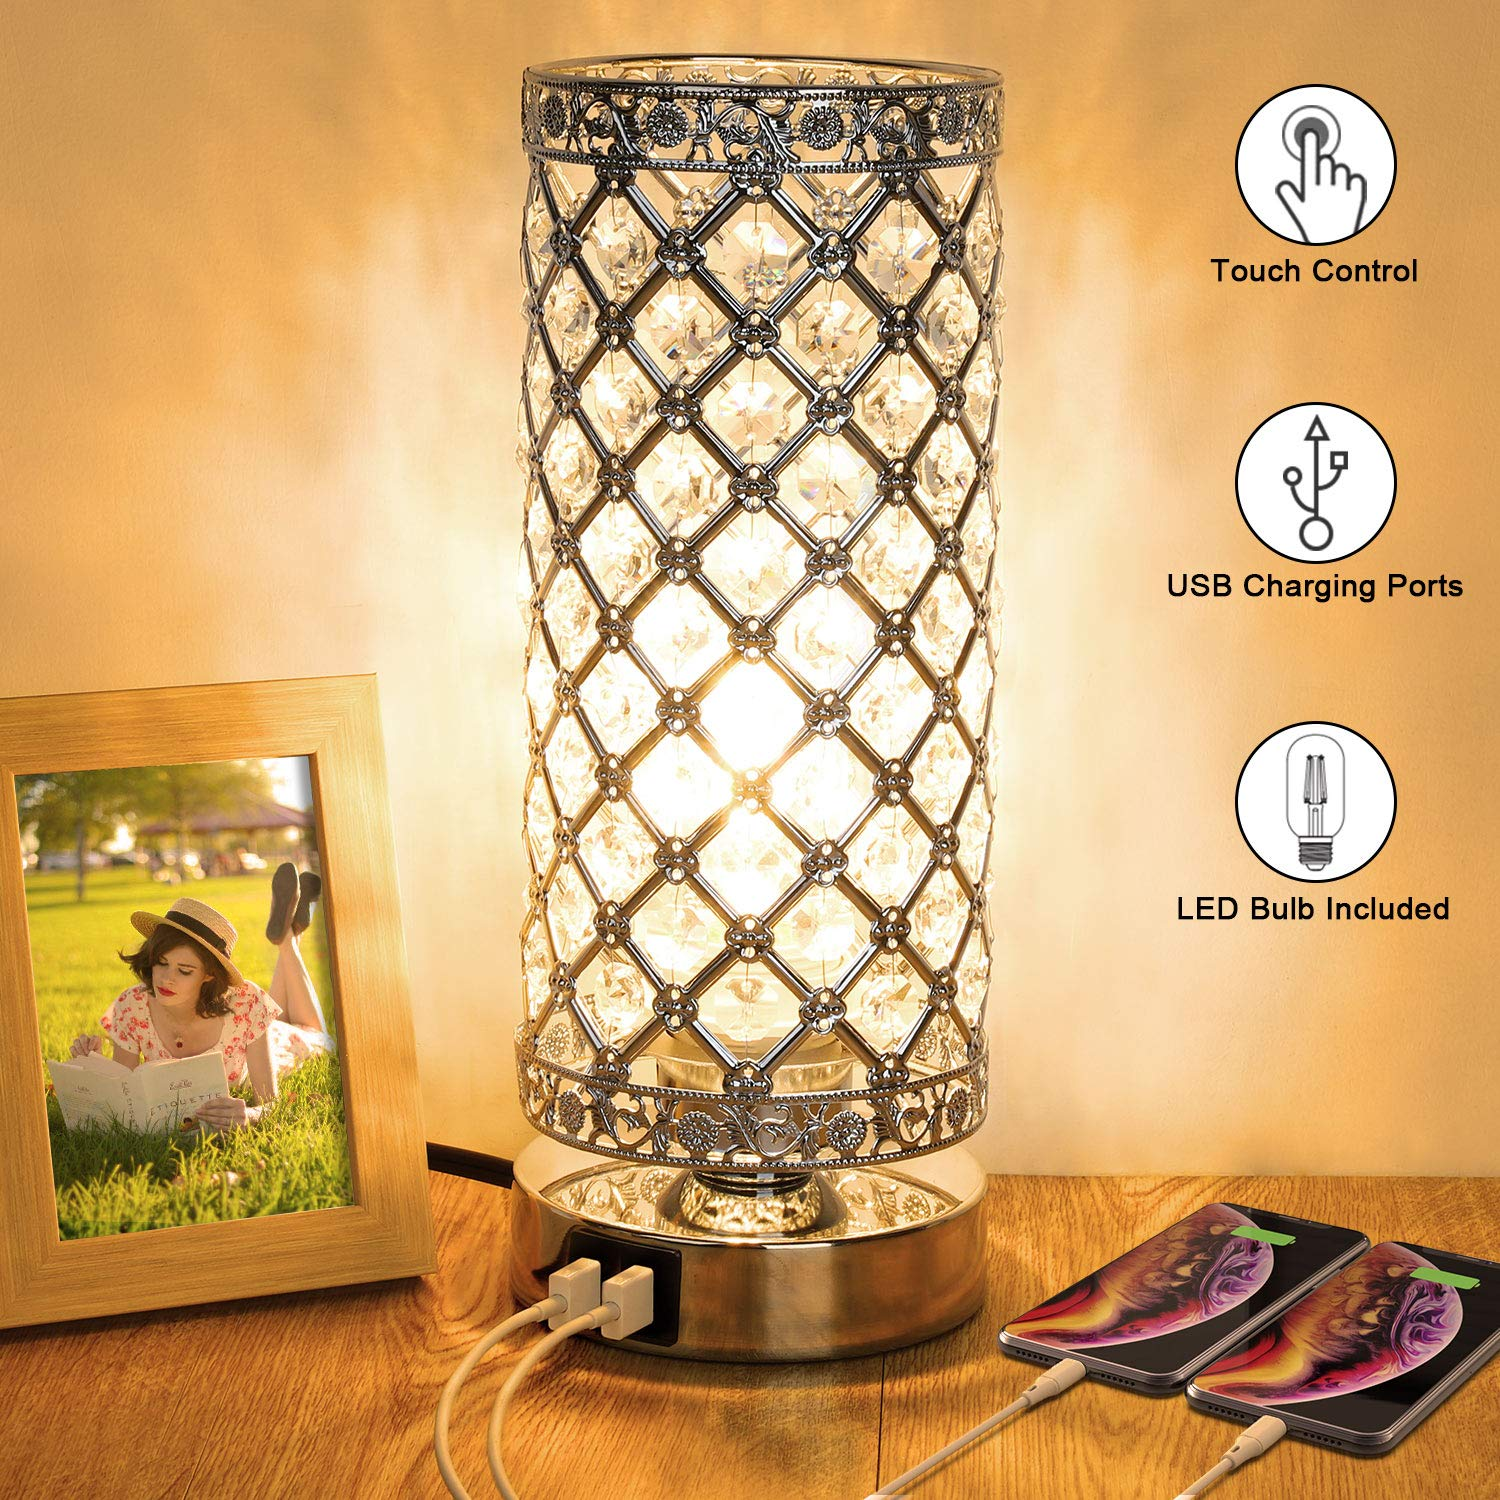 Crystal Touch Control Table Lamp with Dual Fast USB Charging Ports, 3-Way Dimmable Decorative Bedside Nightstand Desk Lamps for Bedrooms Living Room, Small Night Light Lampshade, T45 LED Bulb Included